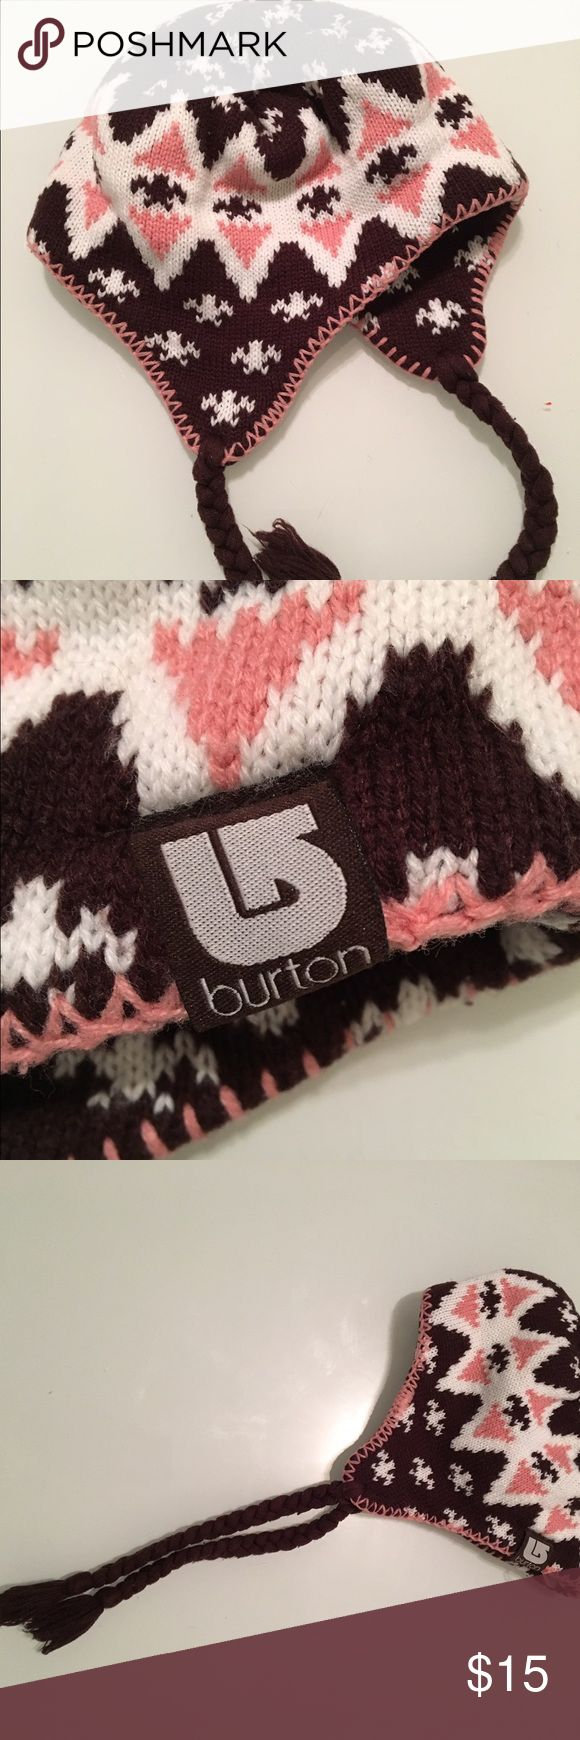 Burton snow beanie Burton ski bunny hat/ beanie. Brown, white and  white pattern. Excellent used condition. Accessories Hats